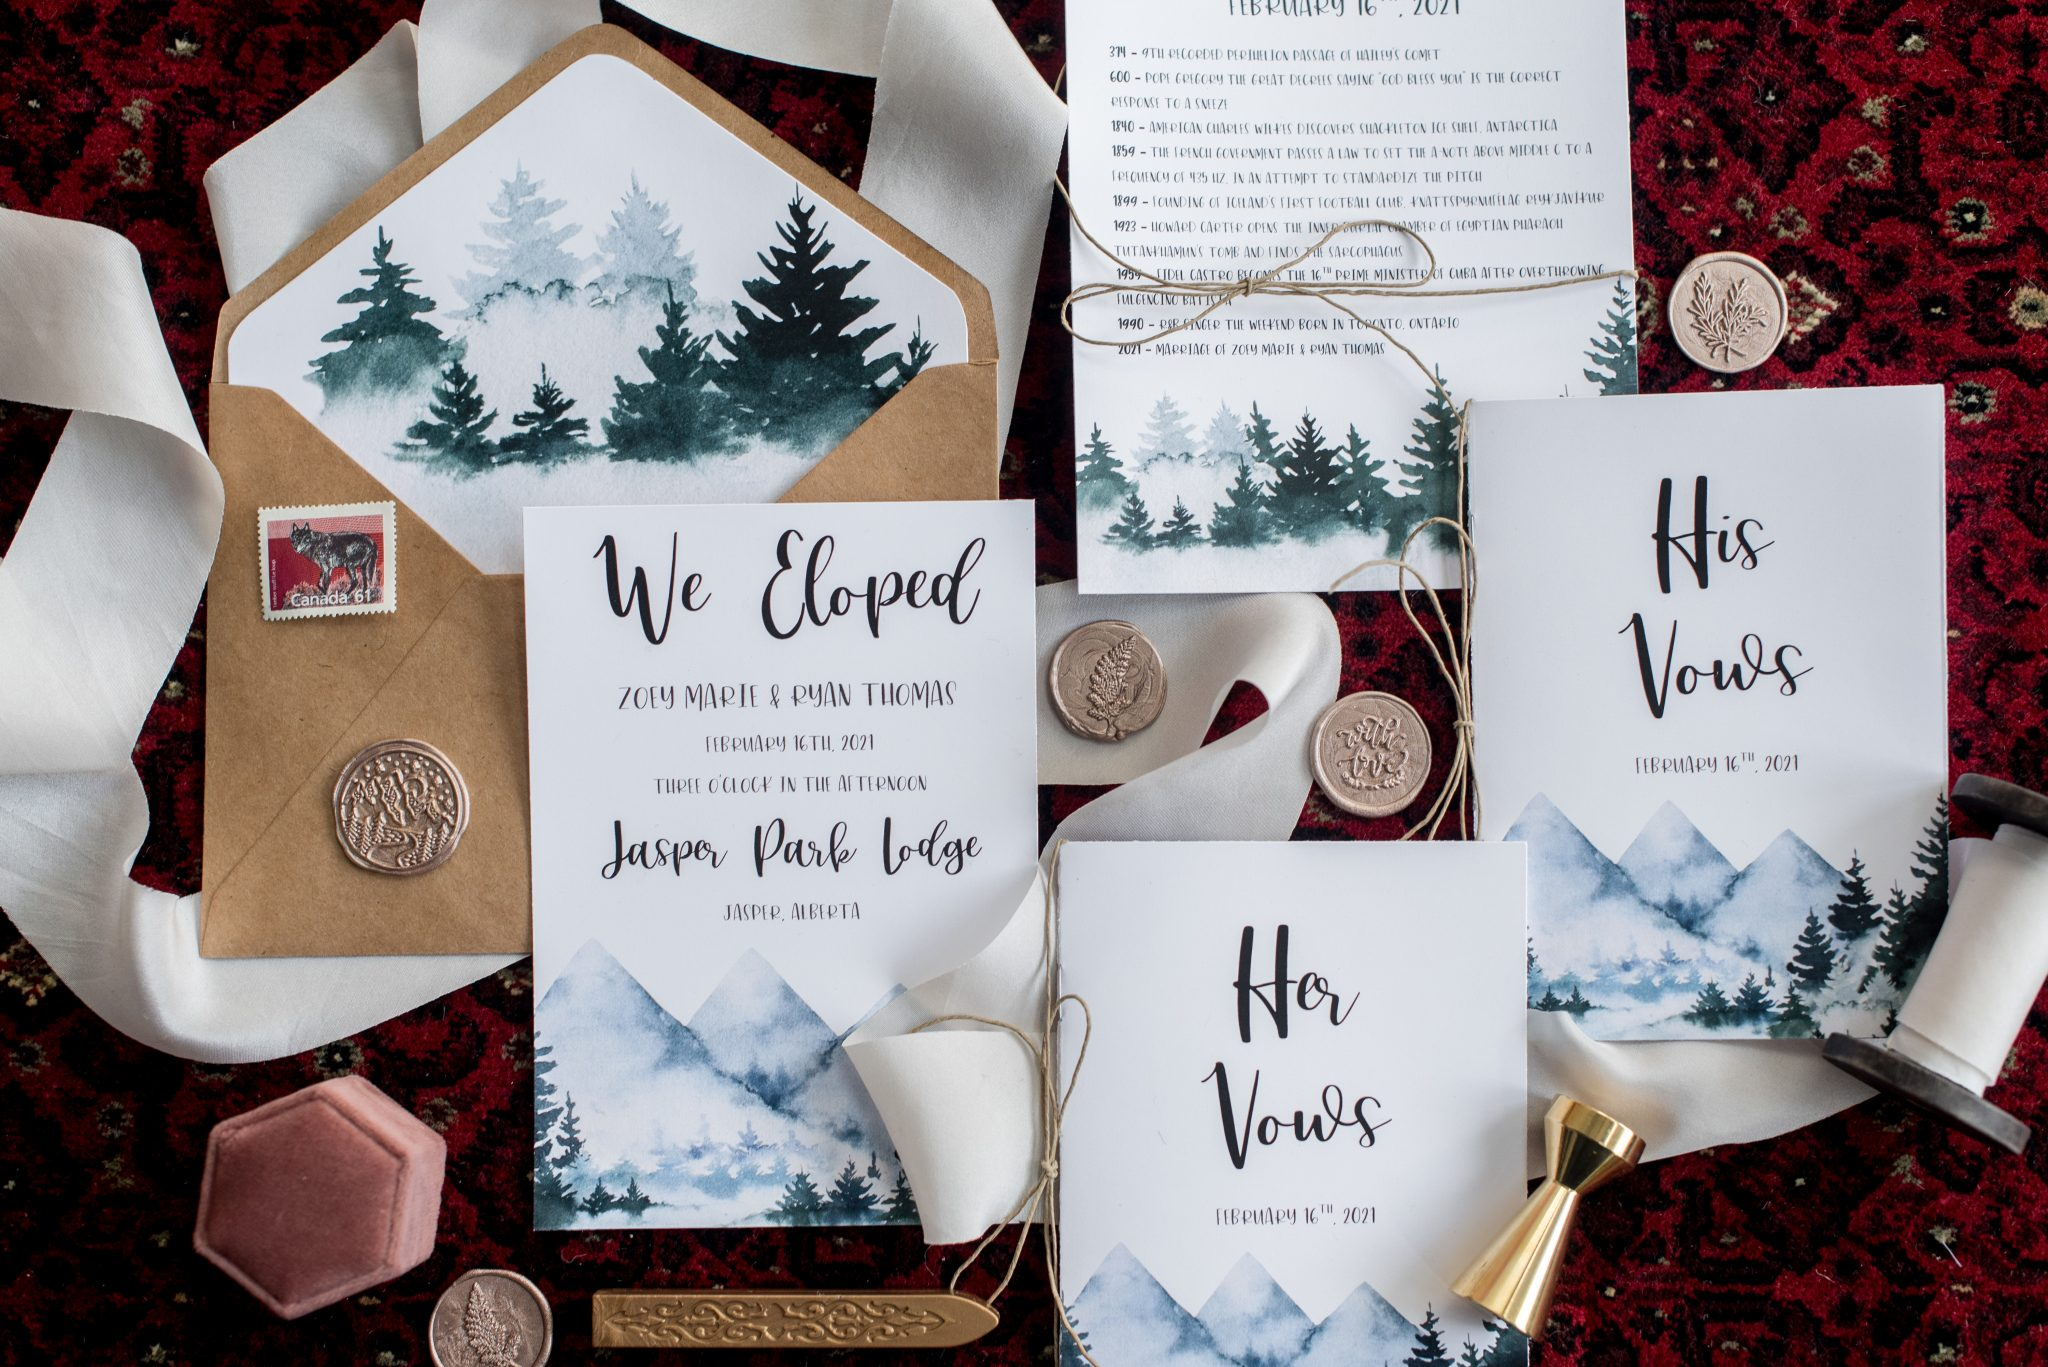 Elopement stationery set created by Loft Design Weddings displayed against a maroon rug